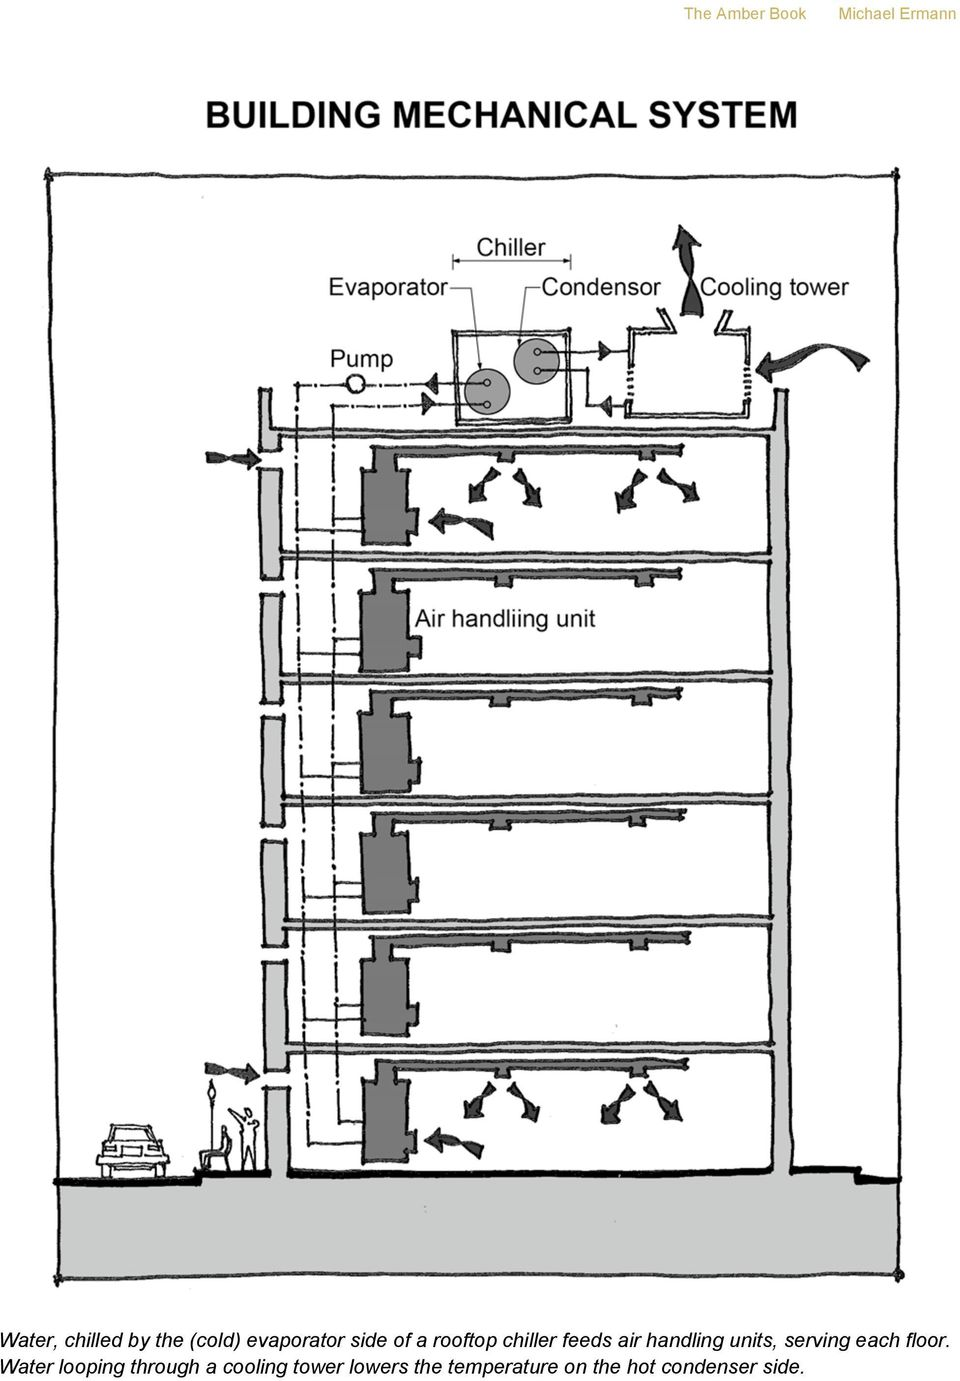 handling units, serving each floor.